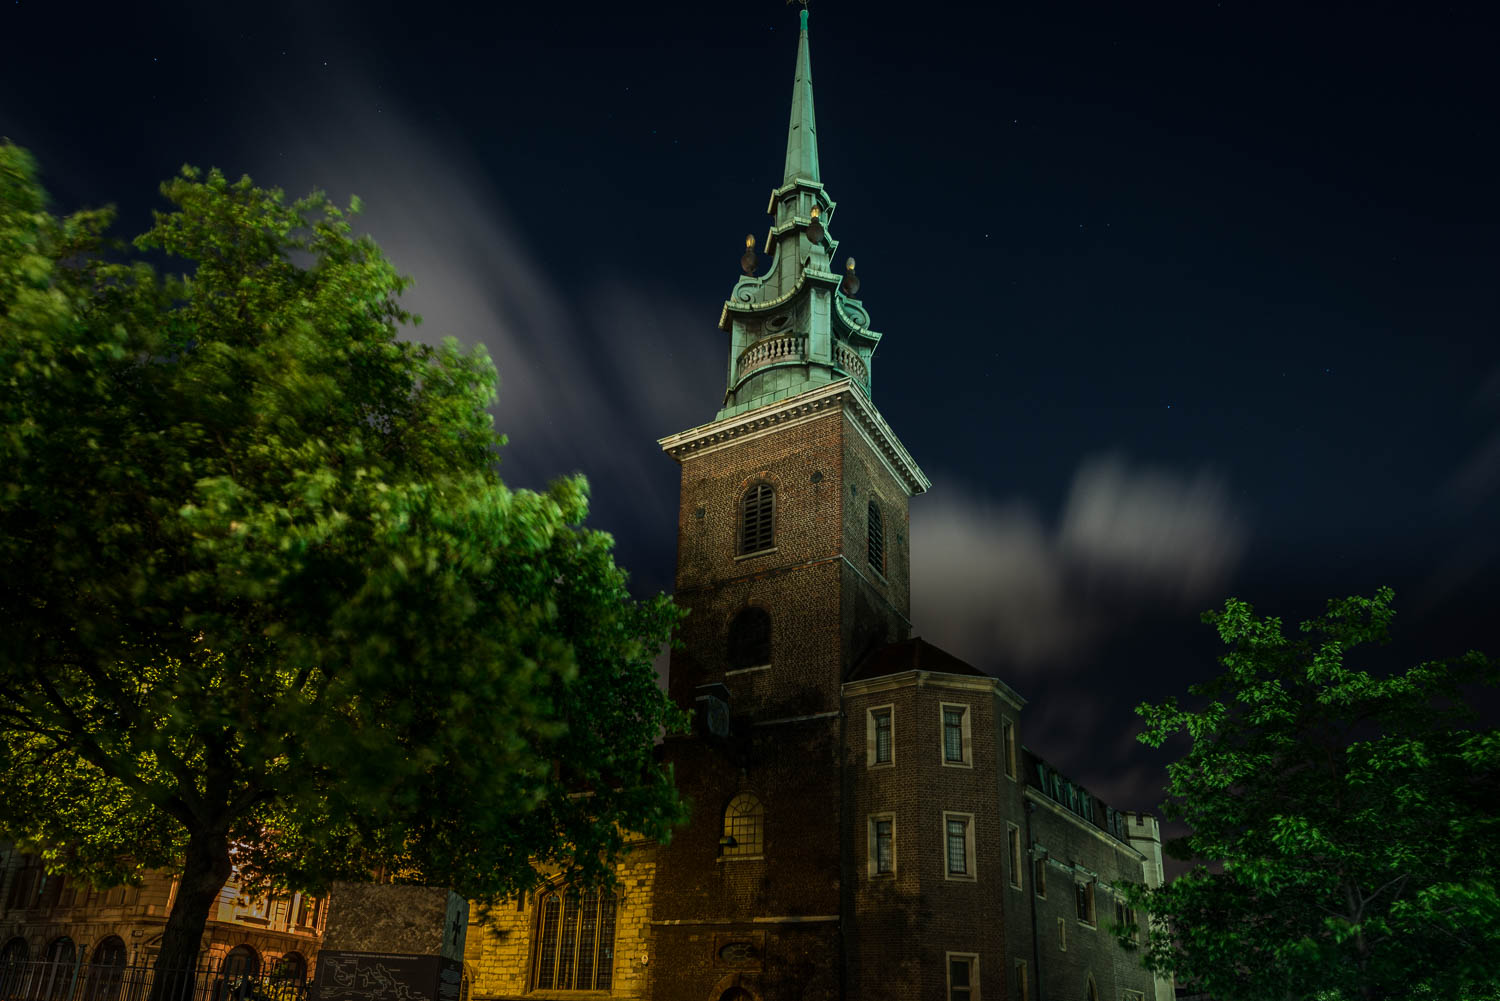 All Hallows By The Tower Church at night City of London